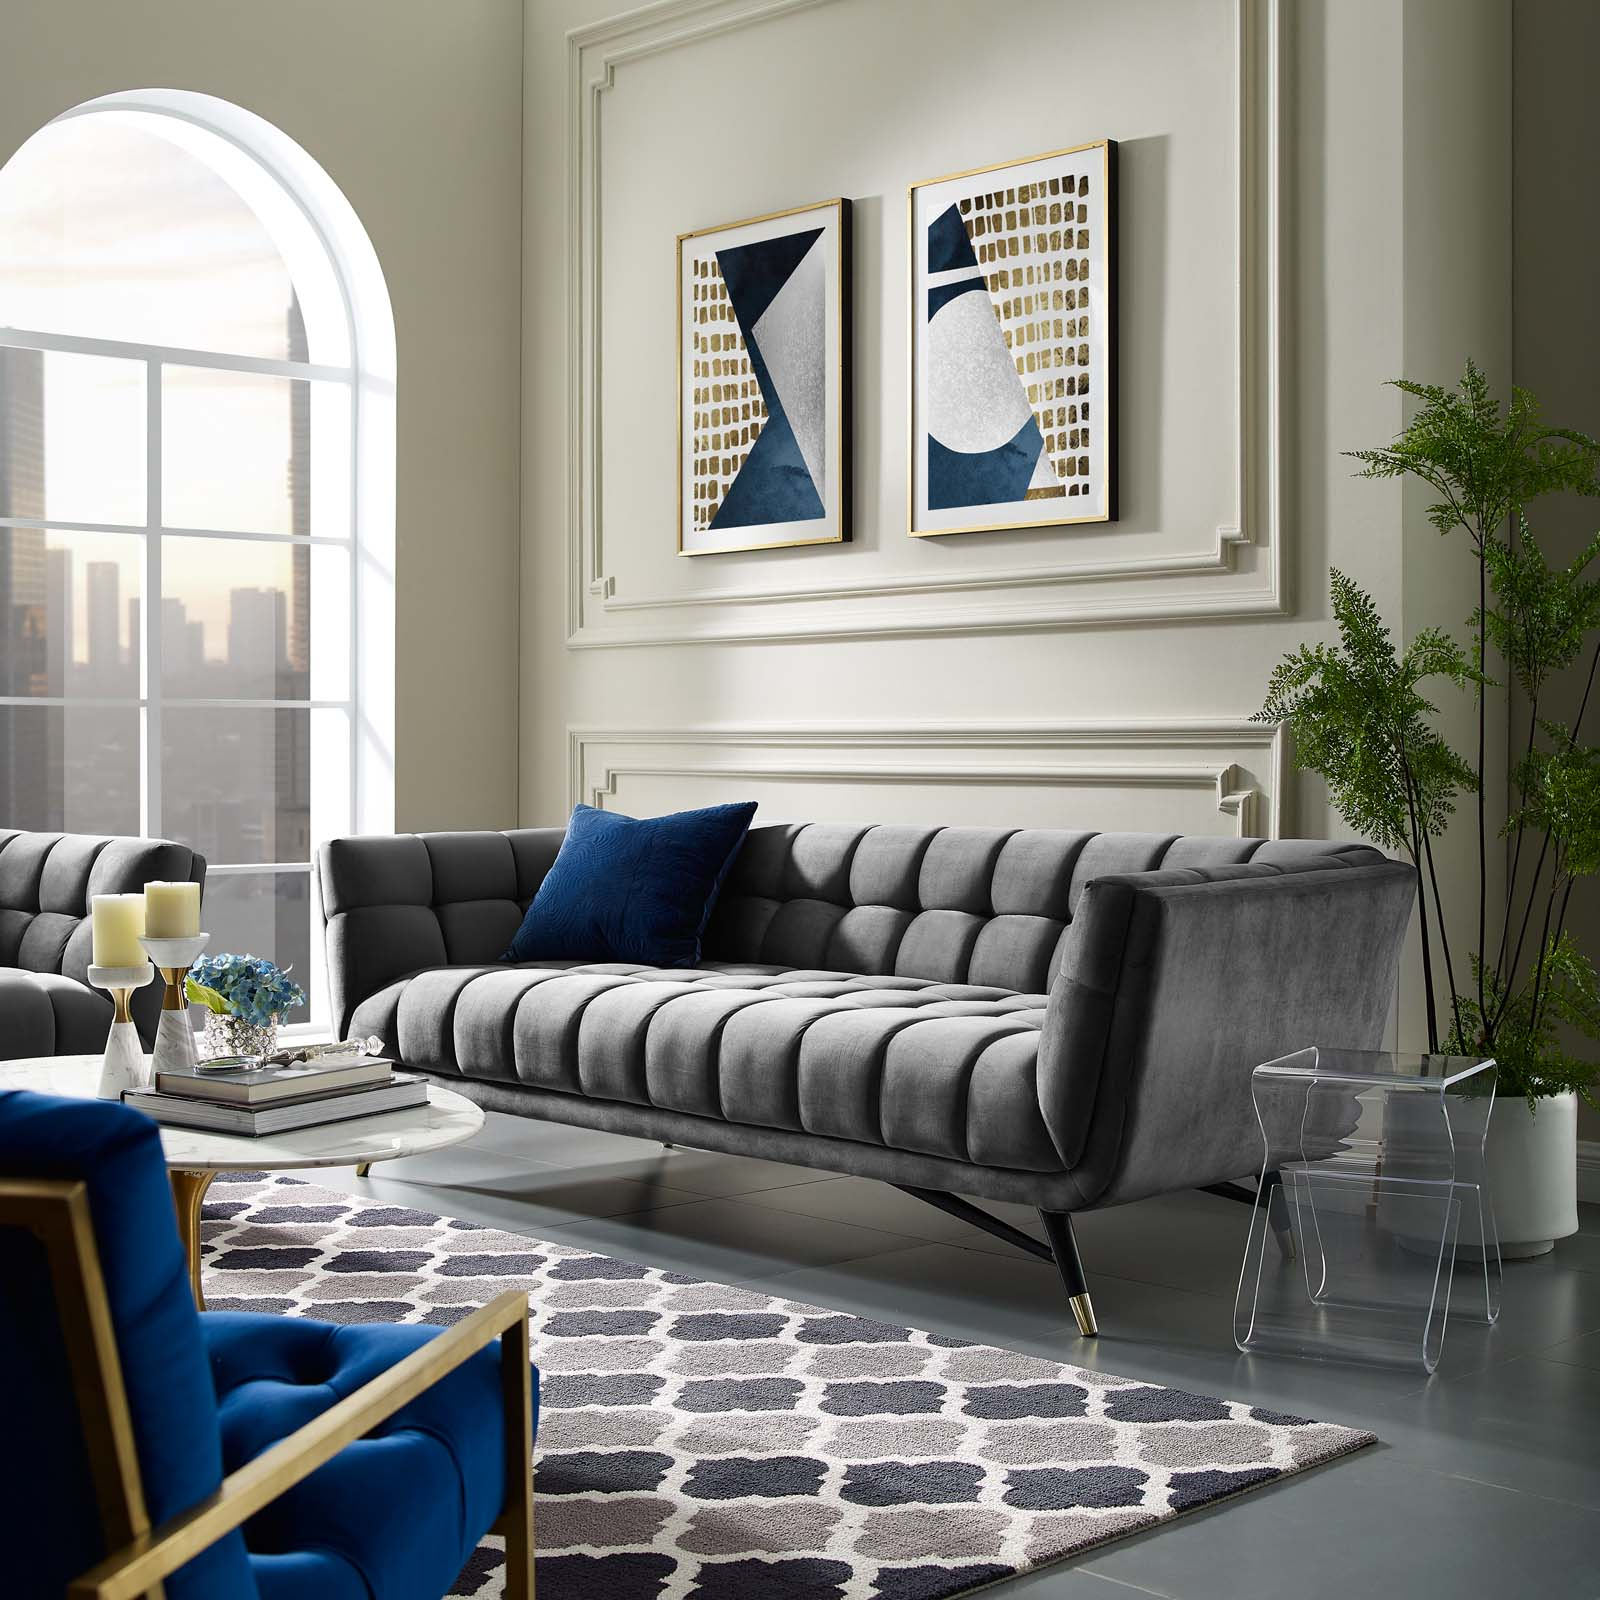 Adept Upholstered Velvet Sofa Gray For Sofas And Chairs (View 1 of 15)